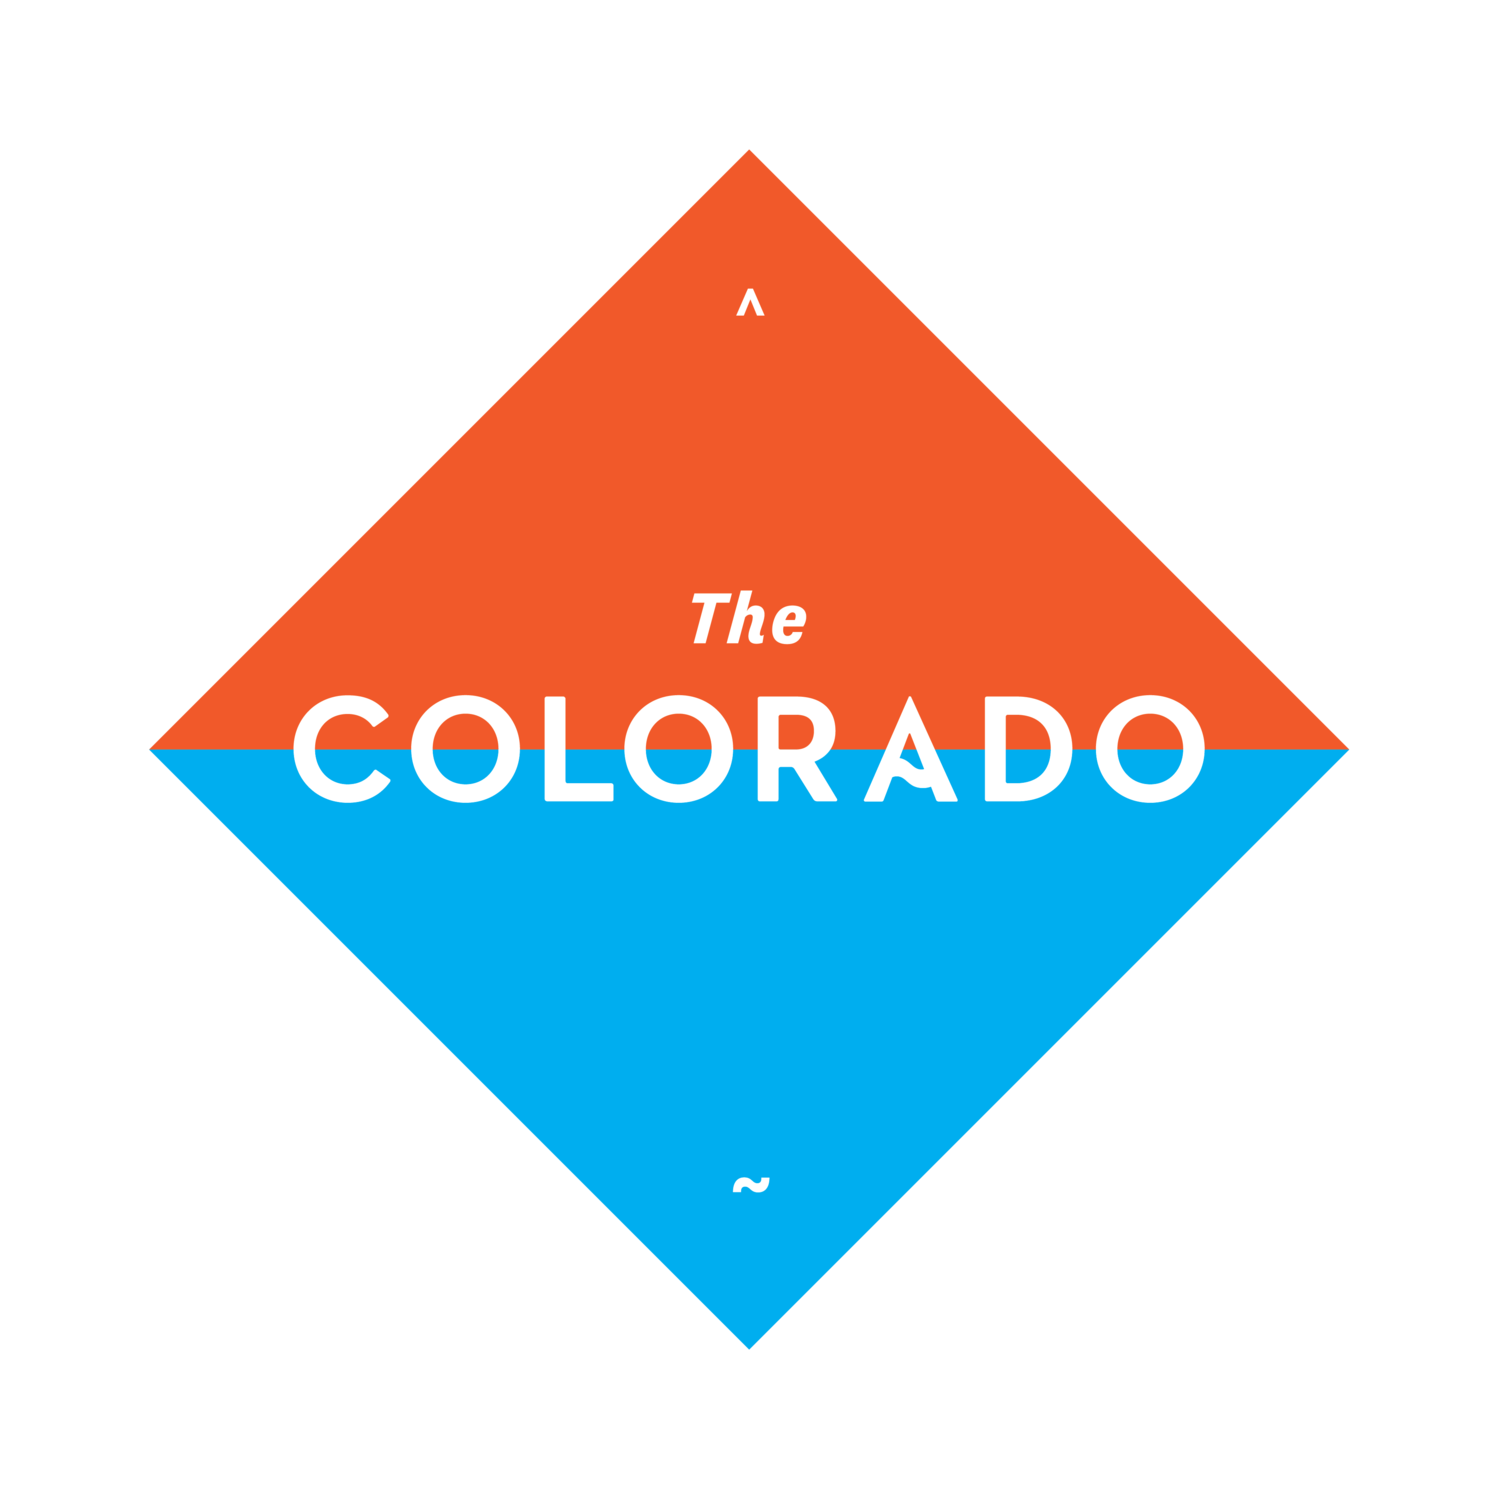 Project Colorado